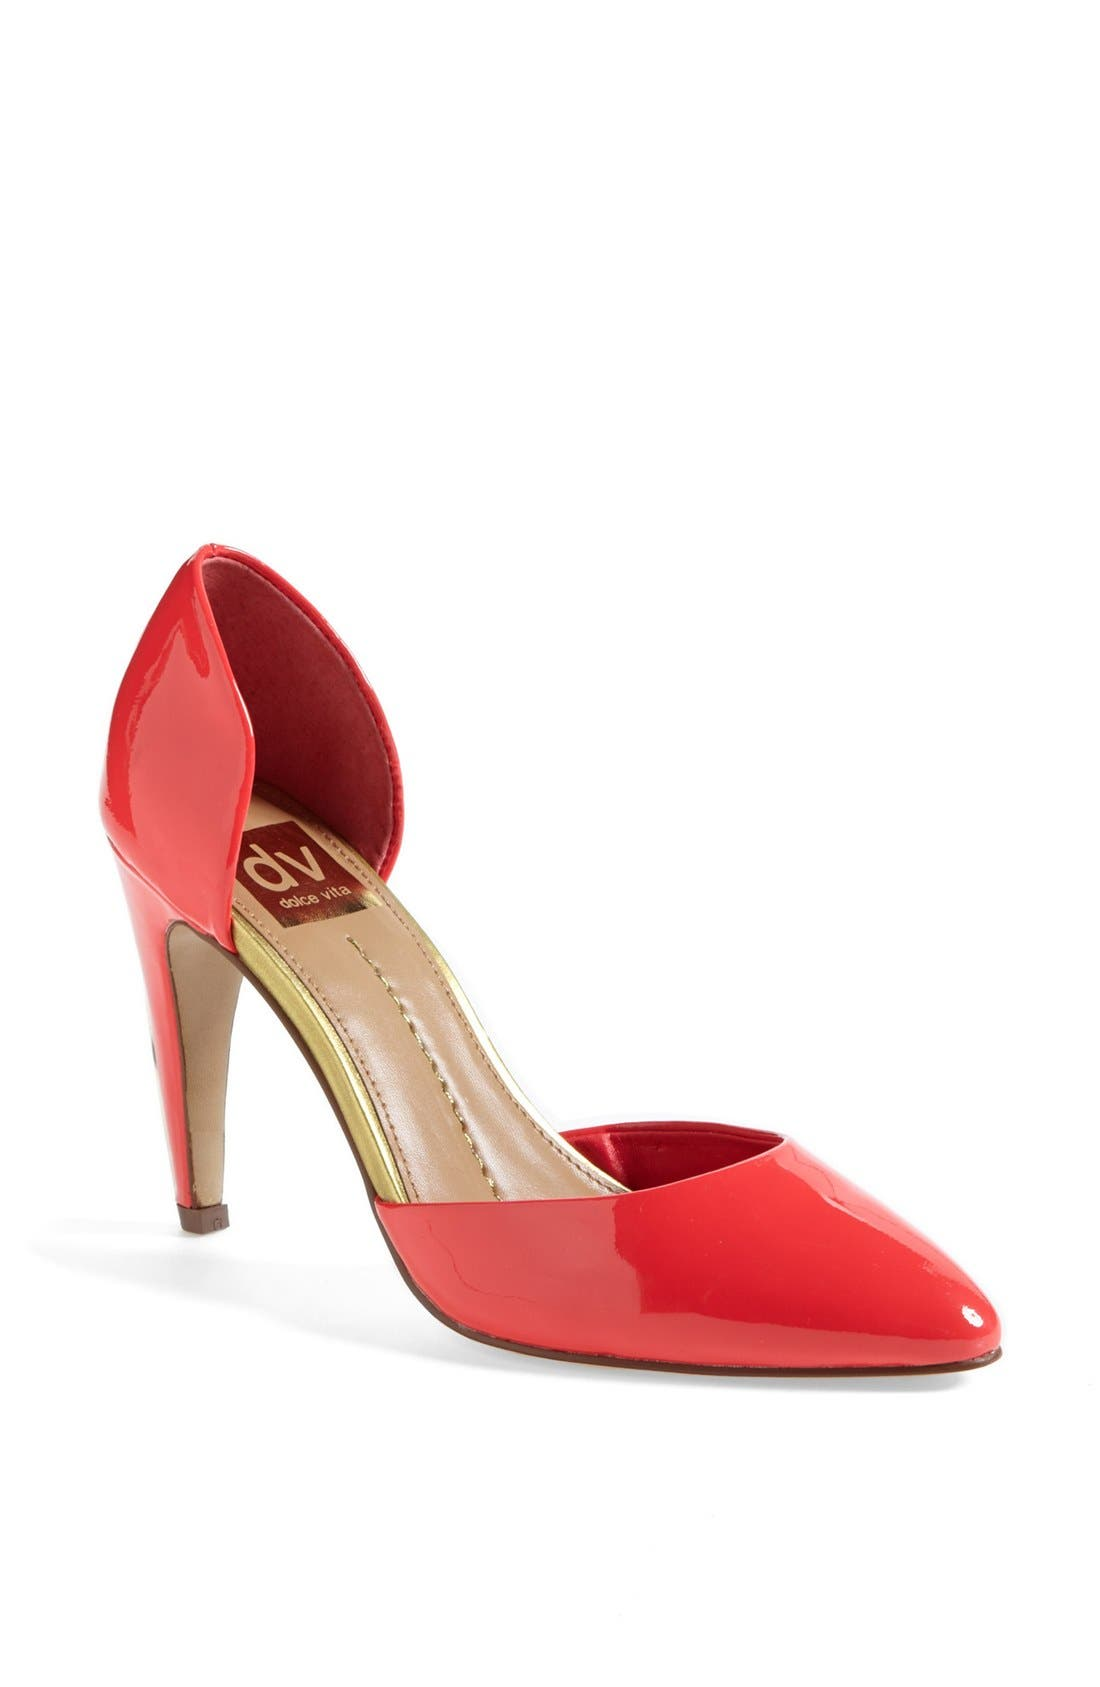 Alternate Image 1 Selected - DV by Dolce Vita 'Pamona' Pump